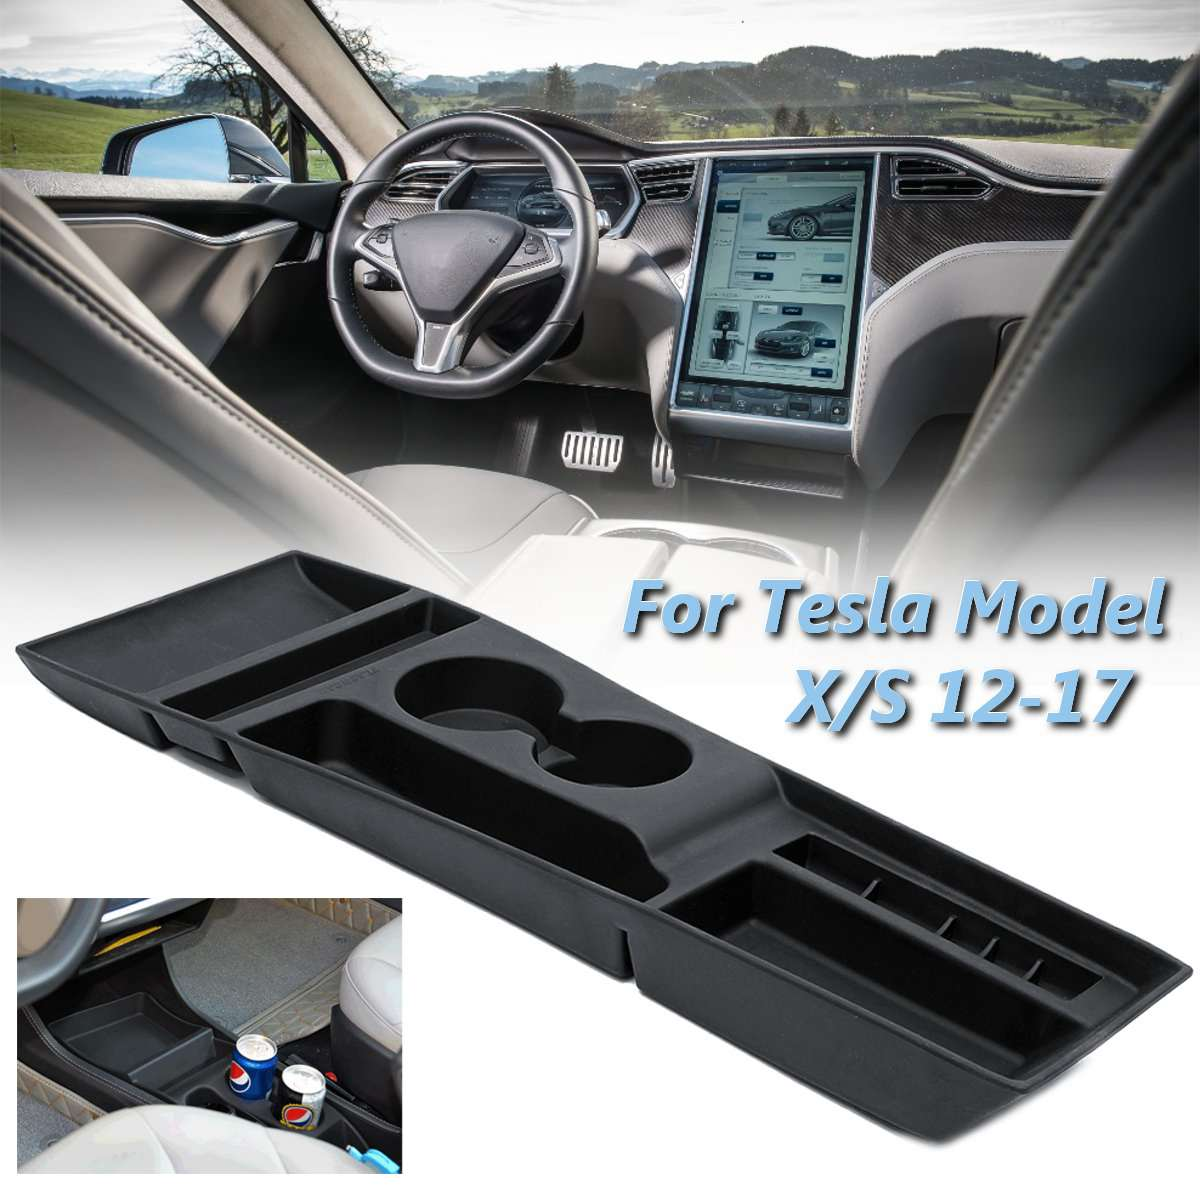 Us 4619 23 Offcar Armrest Box Storage Center Console Organizer Container Holder Box For Tesla Model X S 2012 2013 2014 2015 2016 2017 In Stowing